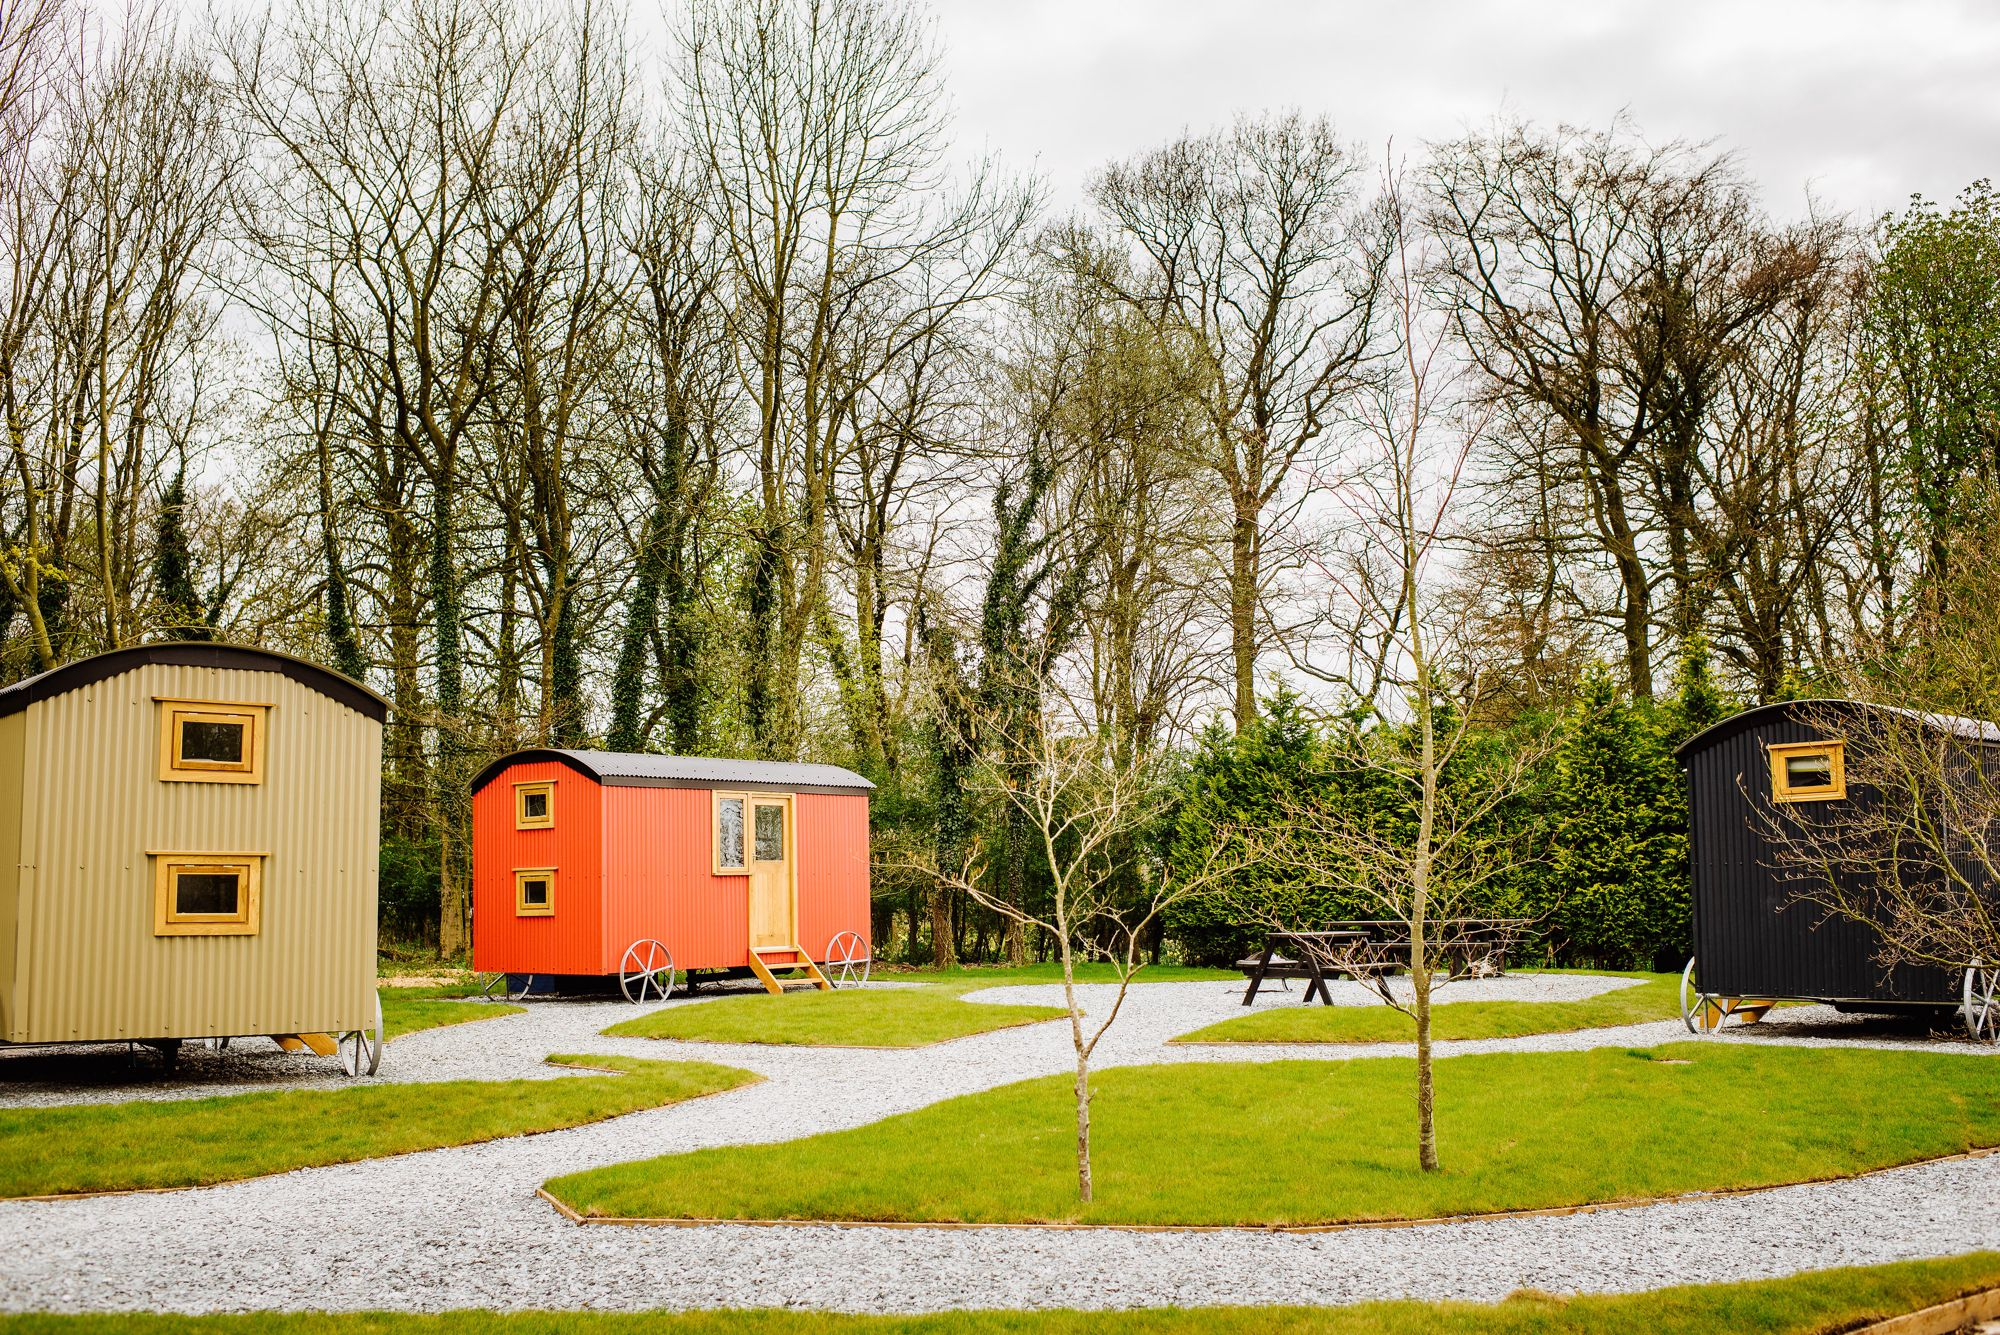 Luxurious shepherd's hut glamping in the grounds of 14th-century Samlesbury Hall in Lancashire.